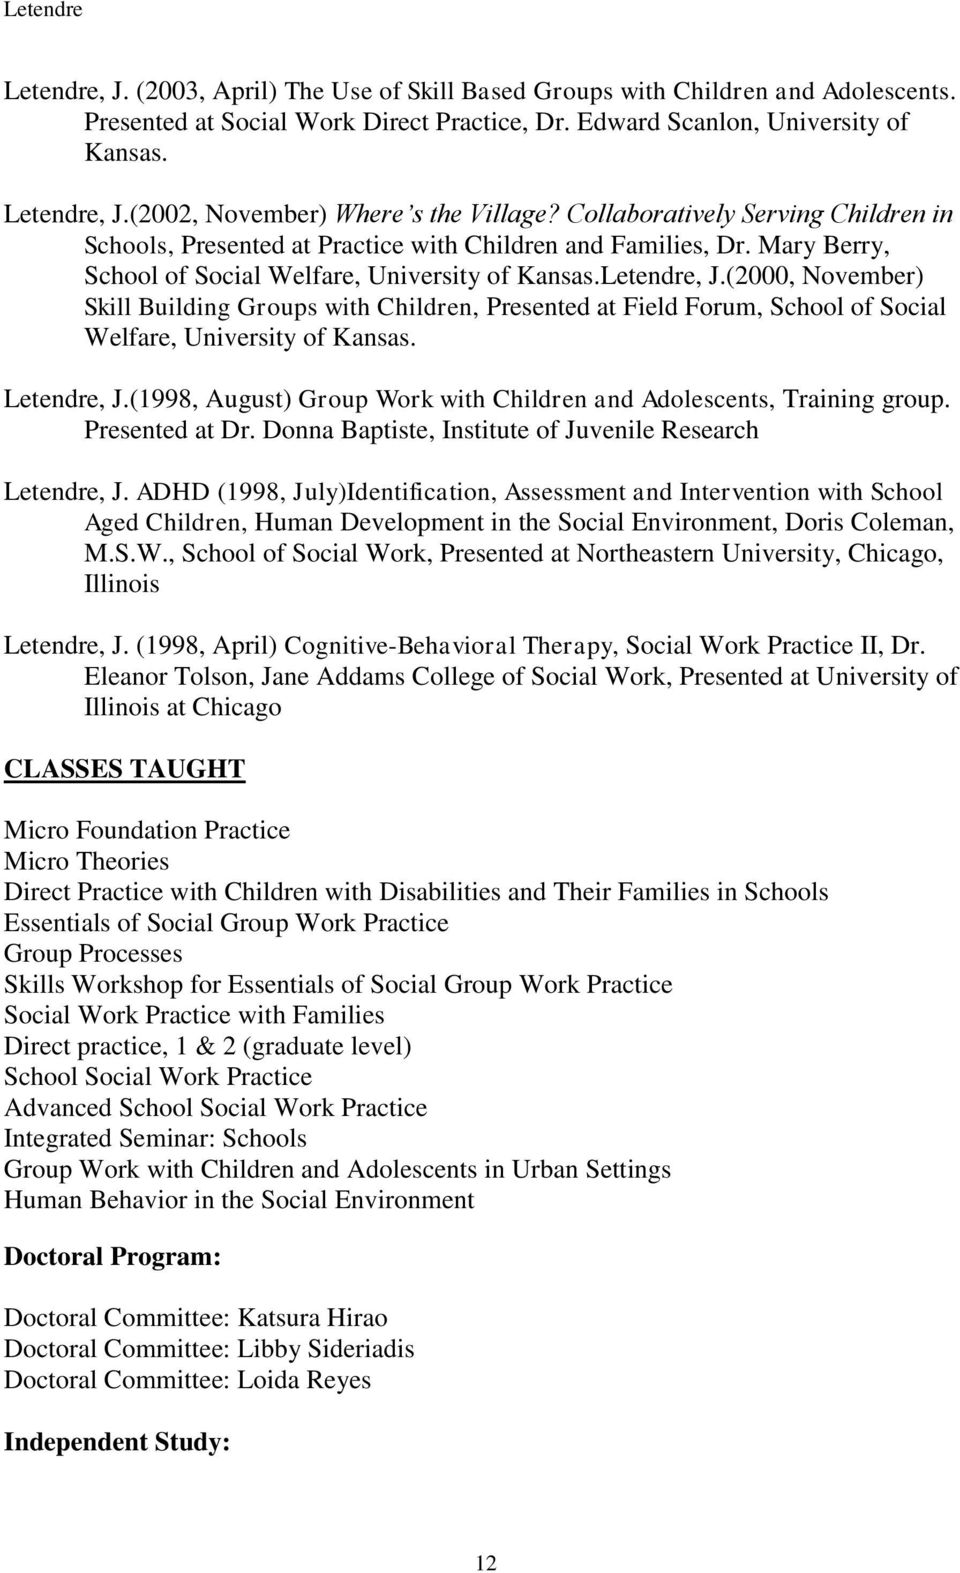 Letendre, J.(2000, November) Skill Building Groups with Children, Presented at Field Forum, School of Social Welfare, University of Kansas. Letendre, J.